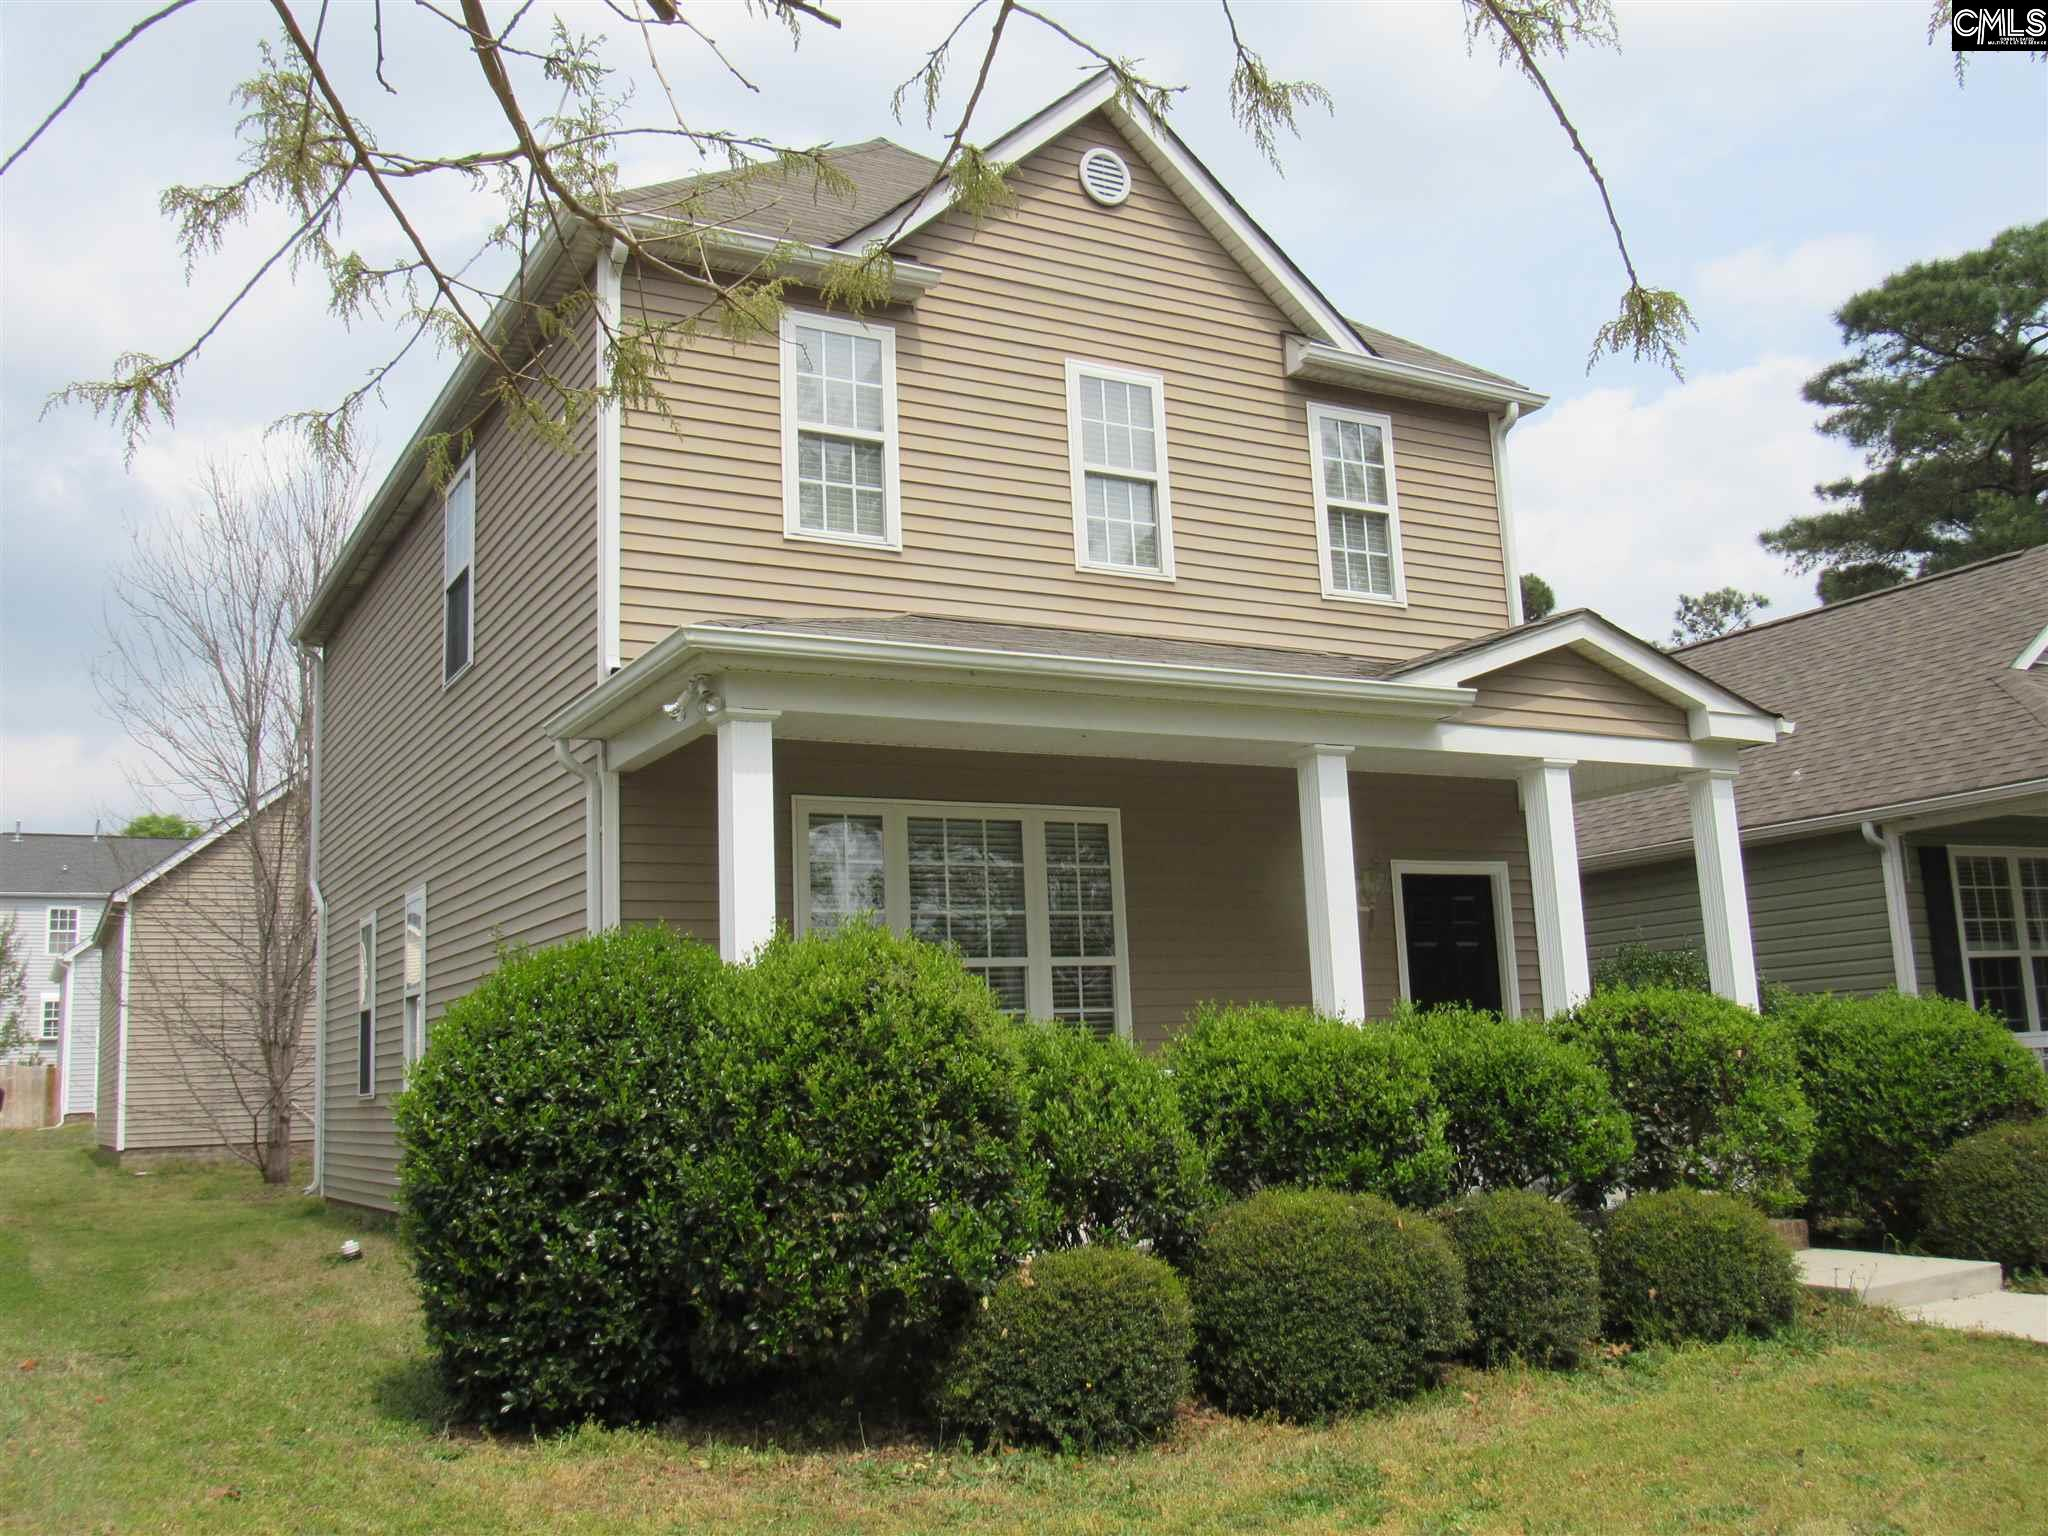 430 Chalmers Columbia, SC 29229